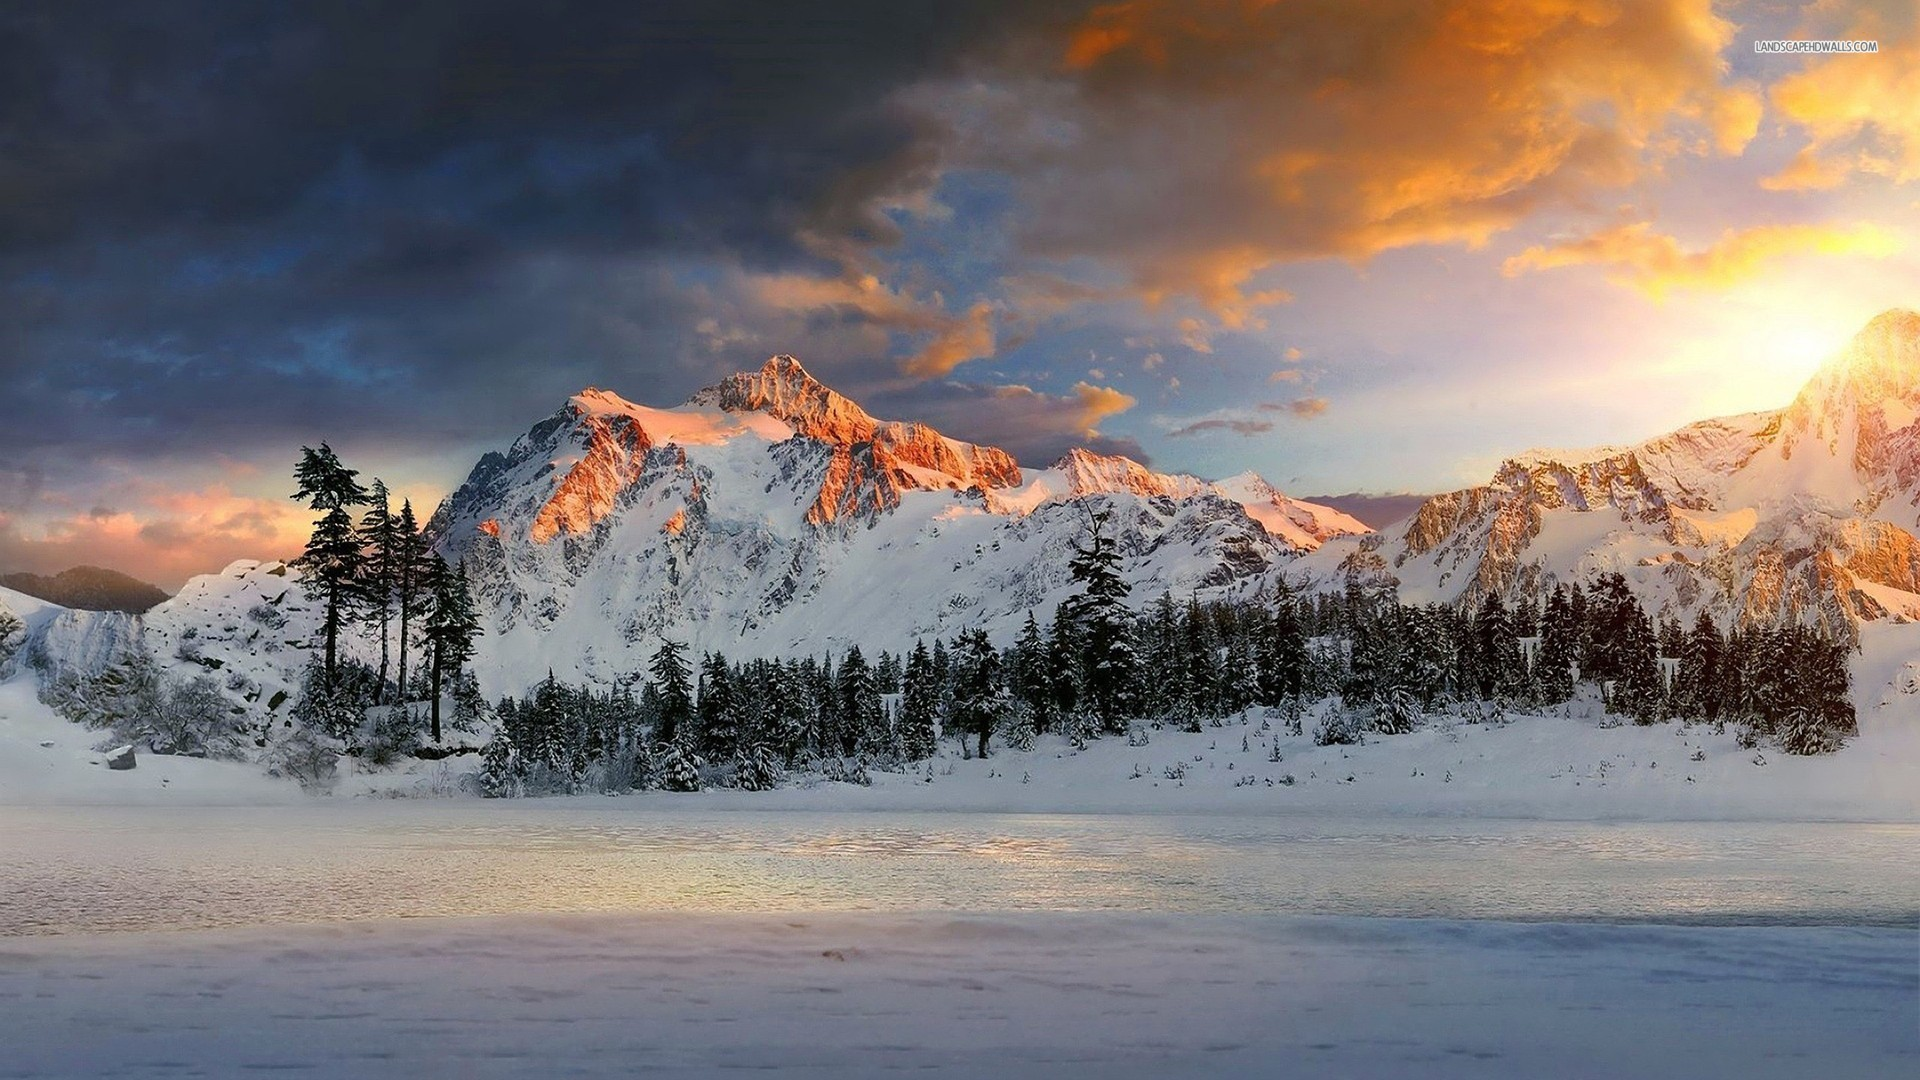 Snow Wallpapers 1920x1080 Full Hd: Snow Mountains Wallpaper (76+ Images